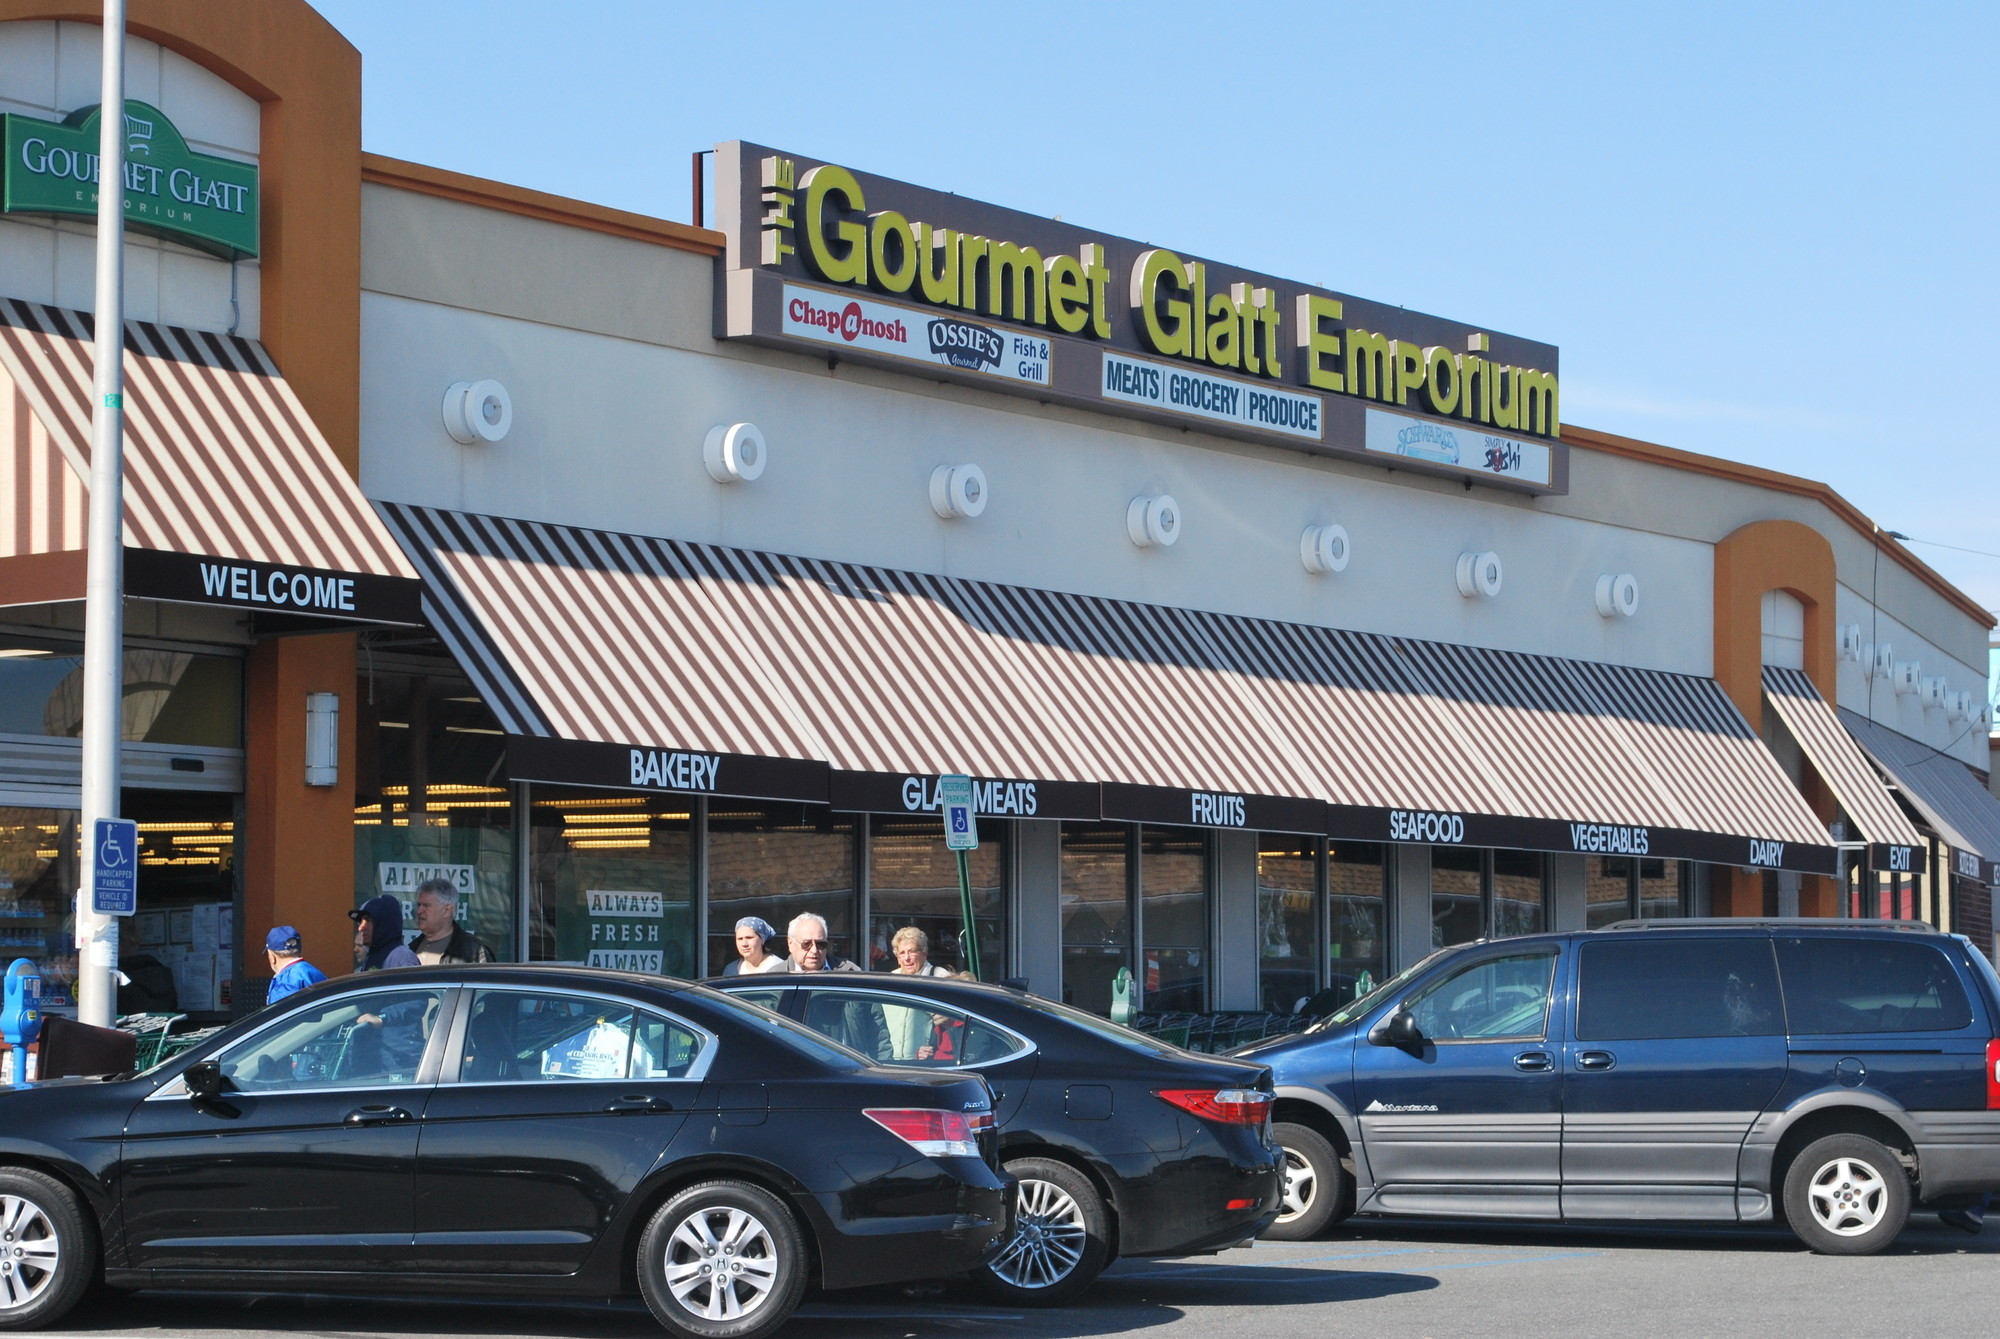 A growing Jewish population in the Five Towns is feeding the need for Gourmet Glatt to possibly open a store in a small shopping center in Woodmere.